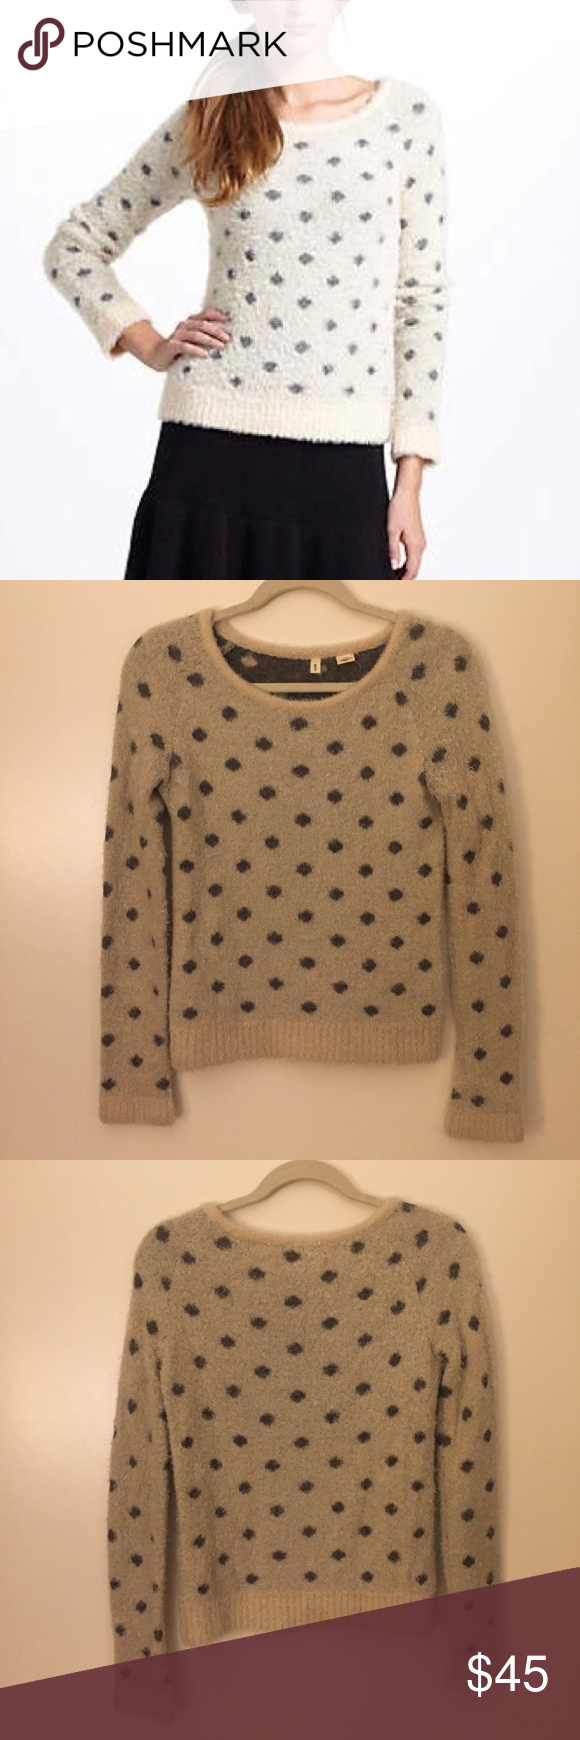 Moth Cream & gray polka dot fuzzy sweater Cute cream and gray ...